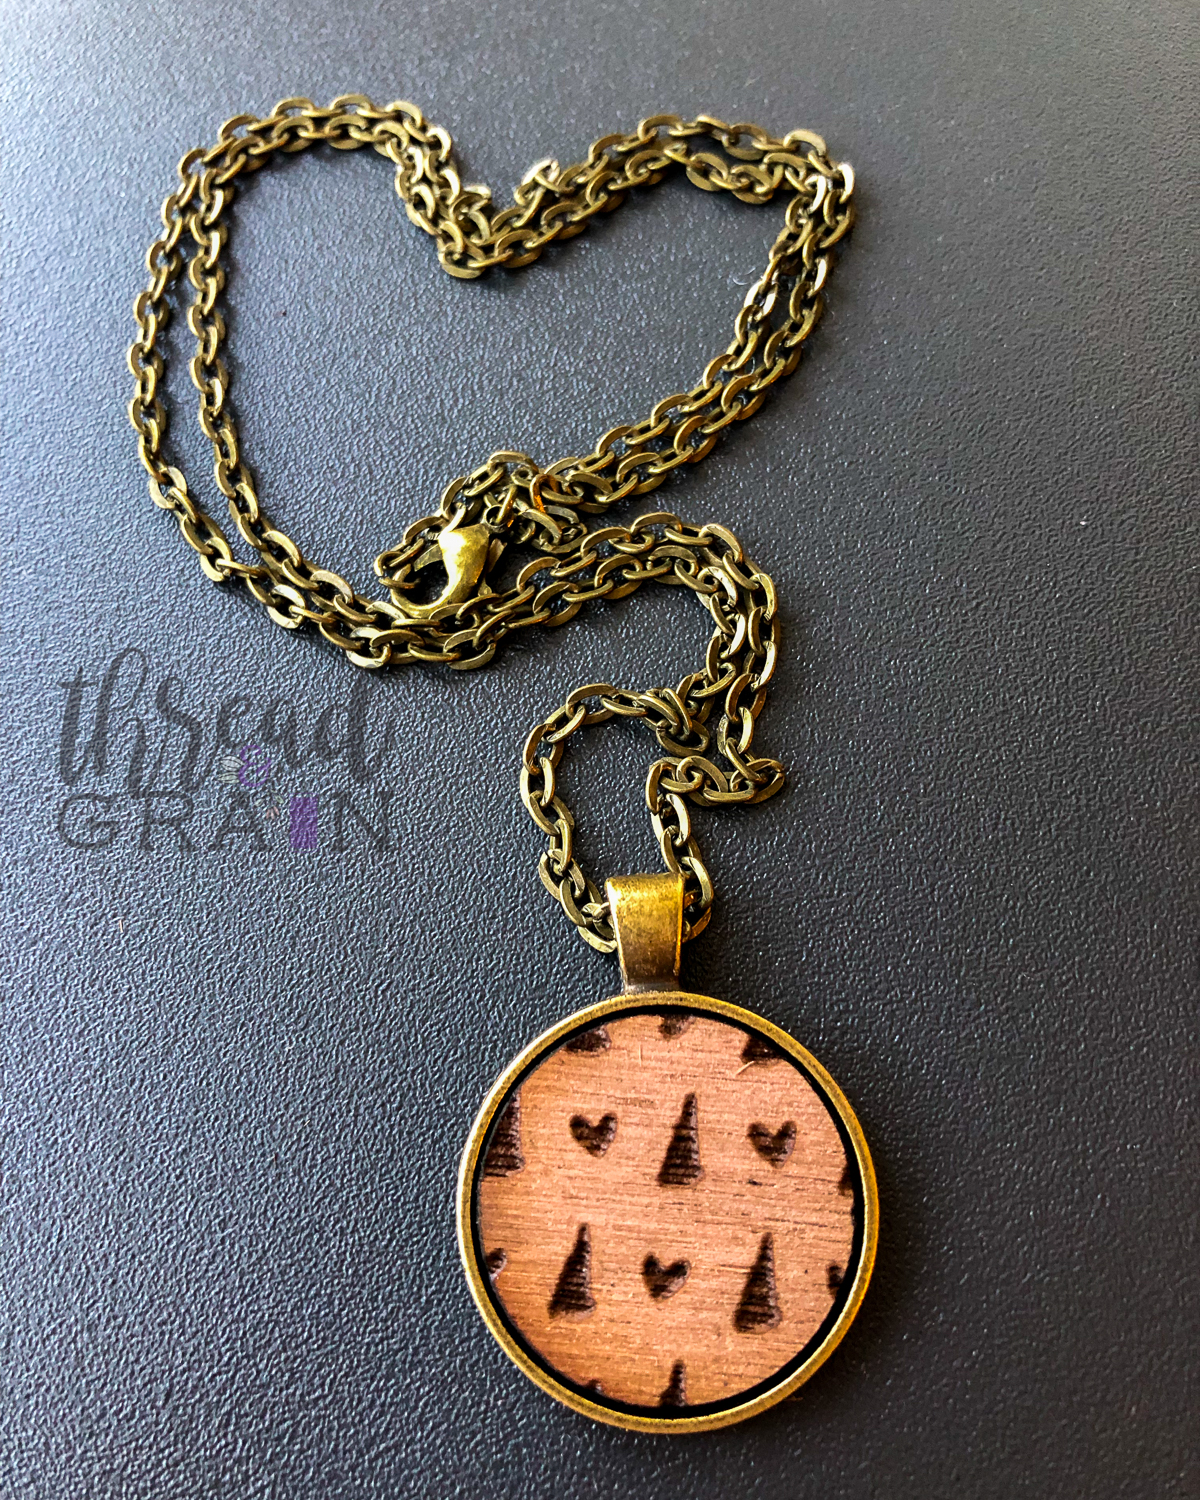 New Hampshire :: Laser Engraved, Wooden, Disc-Mounted Necklace